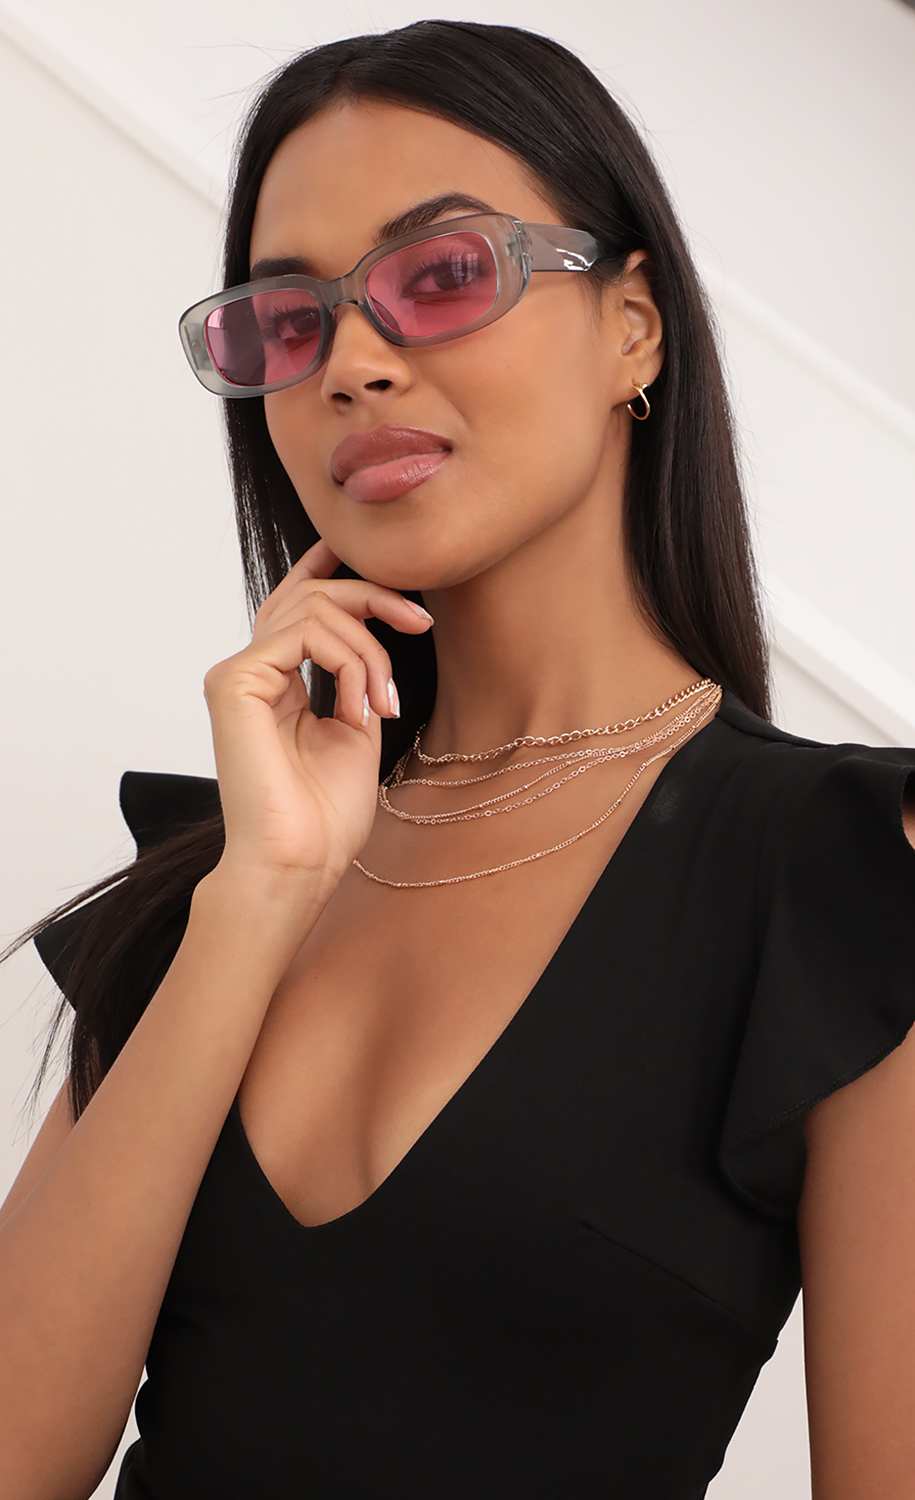 Beverly Rectangular Retro Sunglasses in Clear Gray and Pink